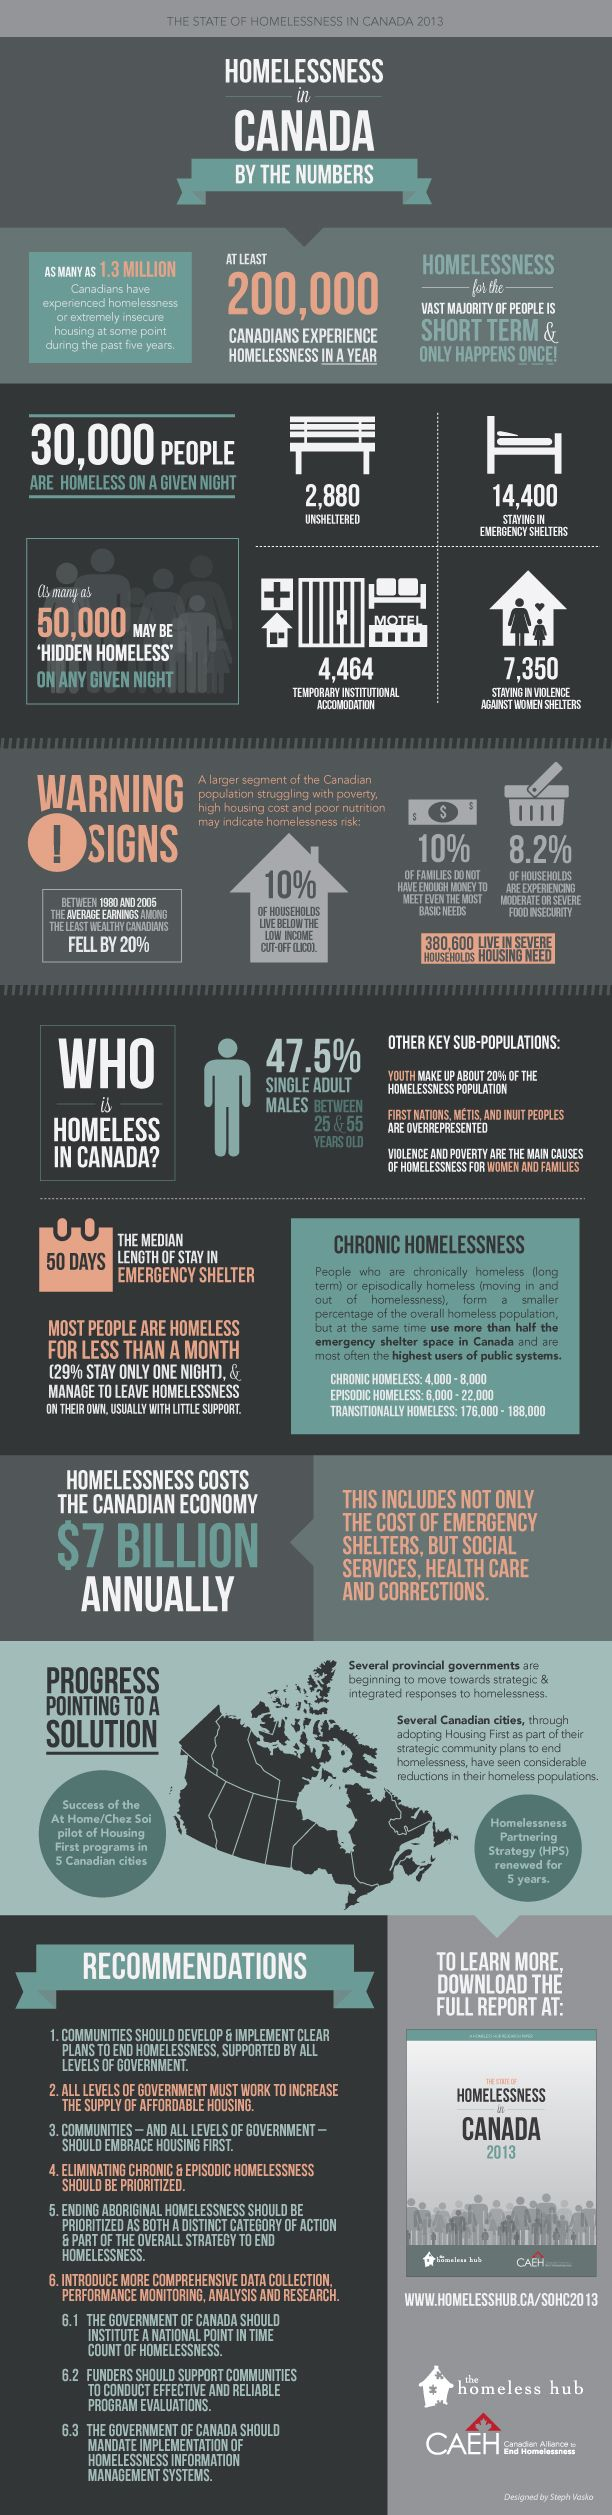 An infographic from The Homeless Hub's State of Homelessness in Canada 2013 report. You can see the full report here: http://www.homelesshub.ca/Library/View.aspx?id=55941